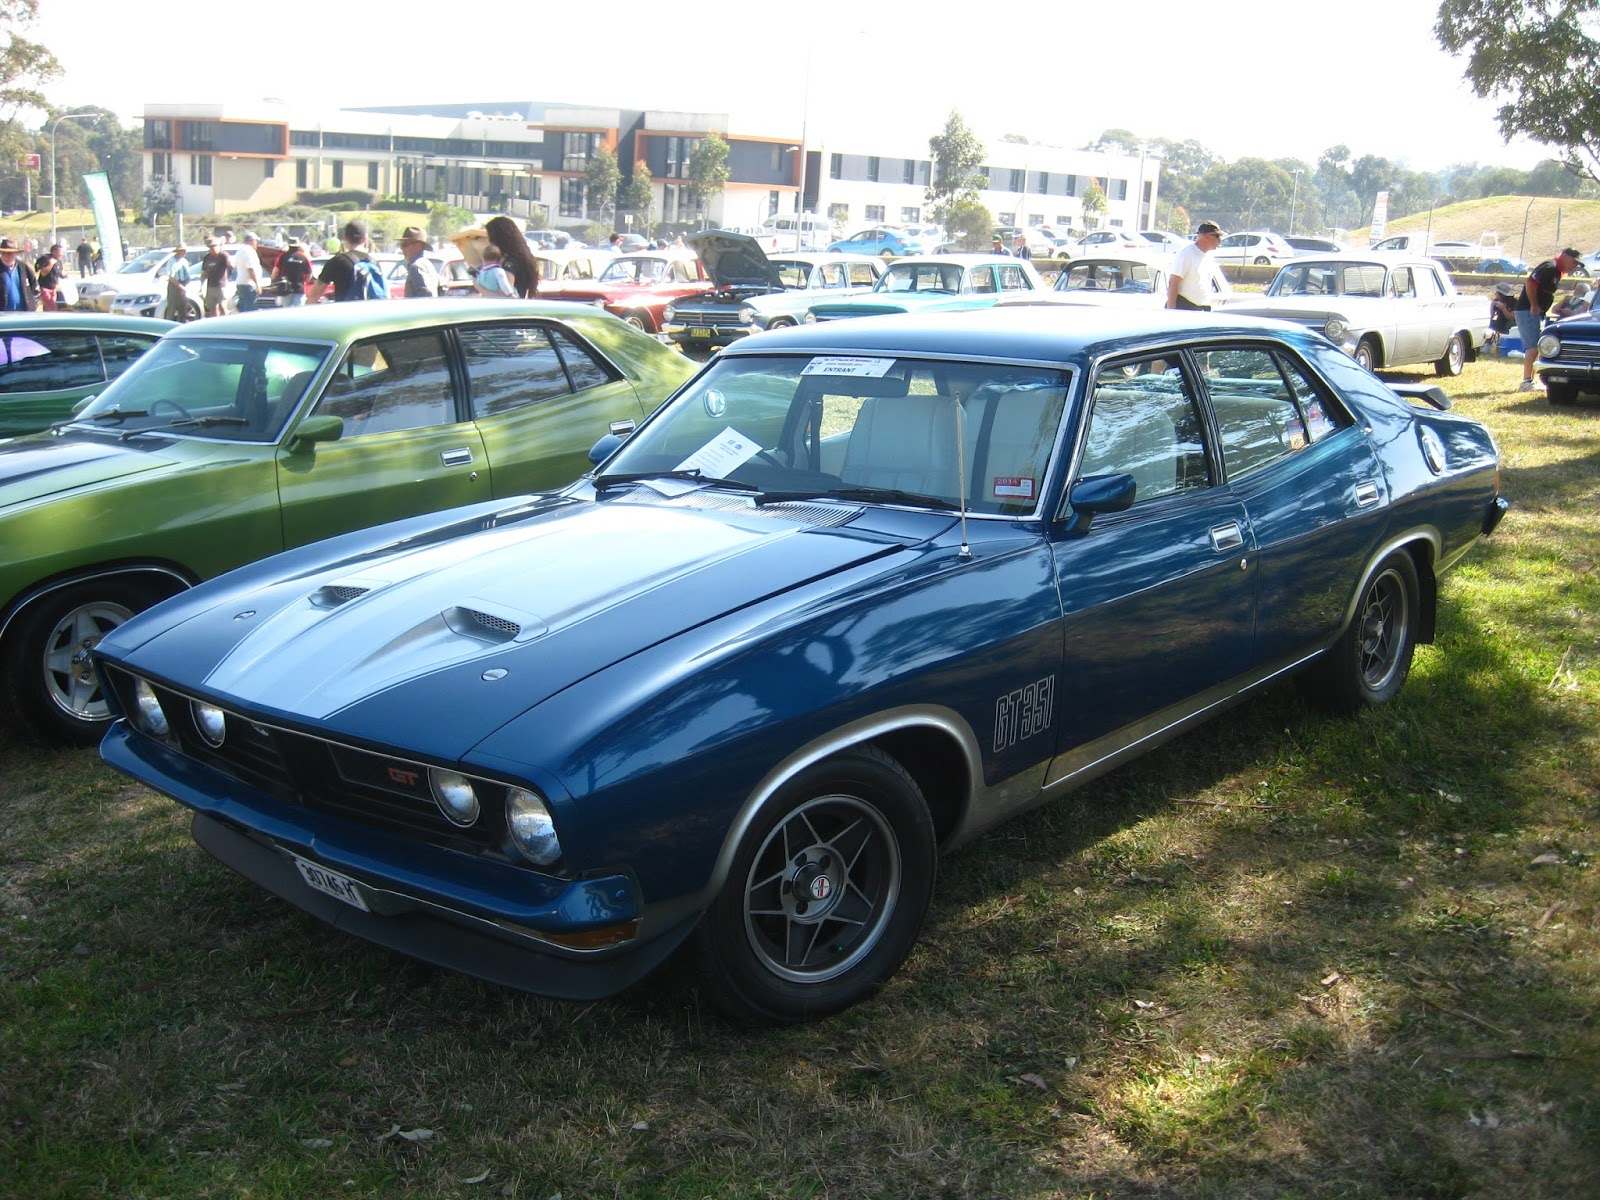 Aussie Old Parked Cars  1973 Ford XB Falcon GT Sedan